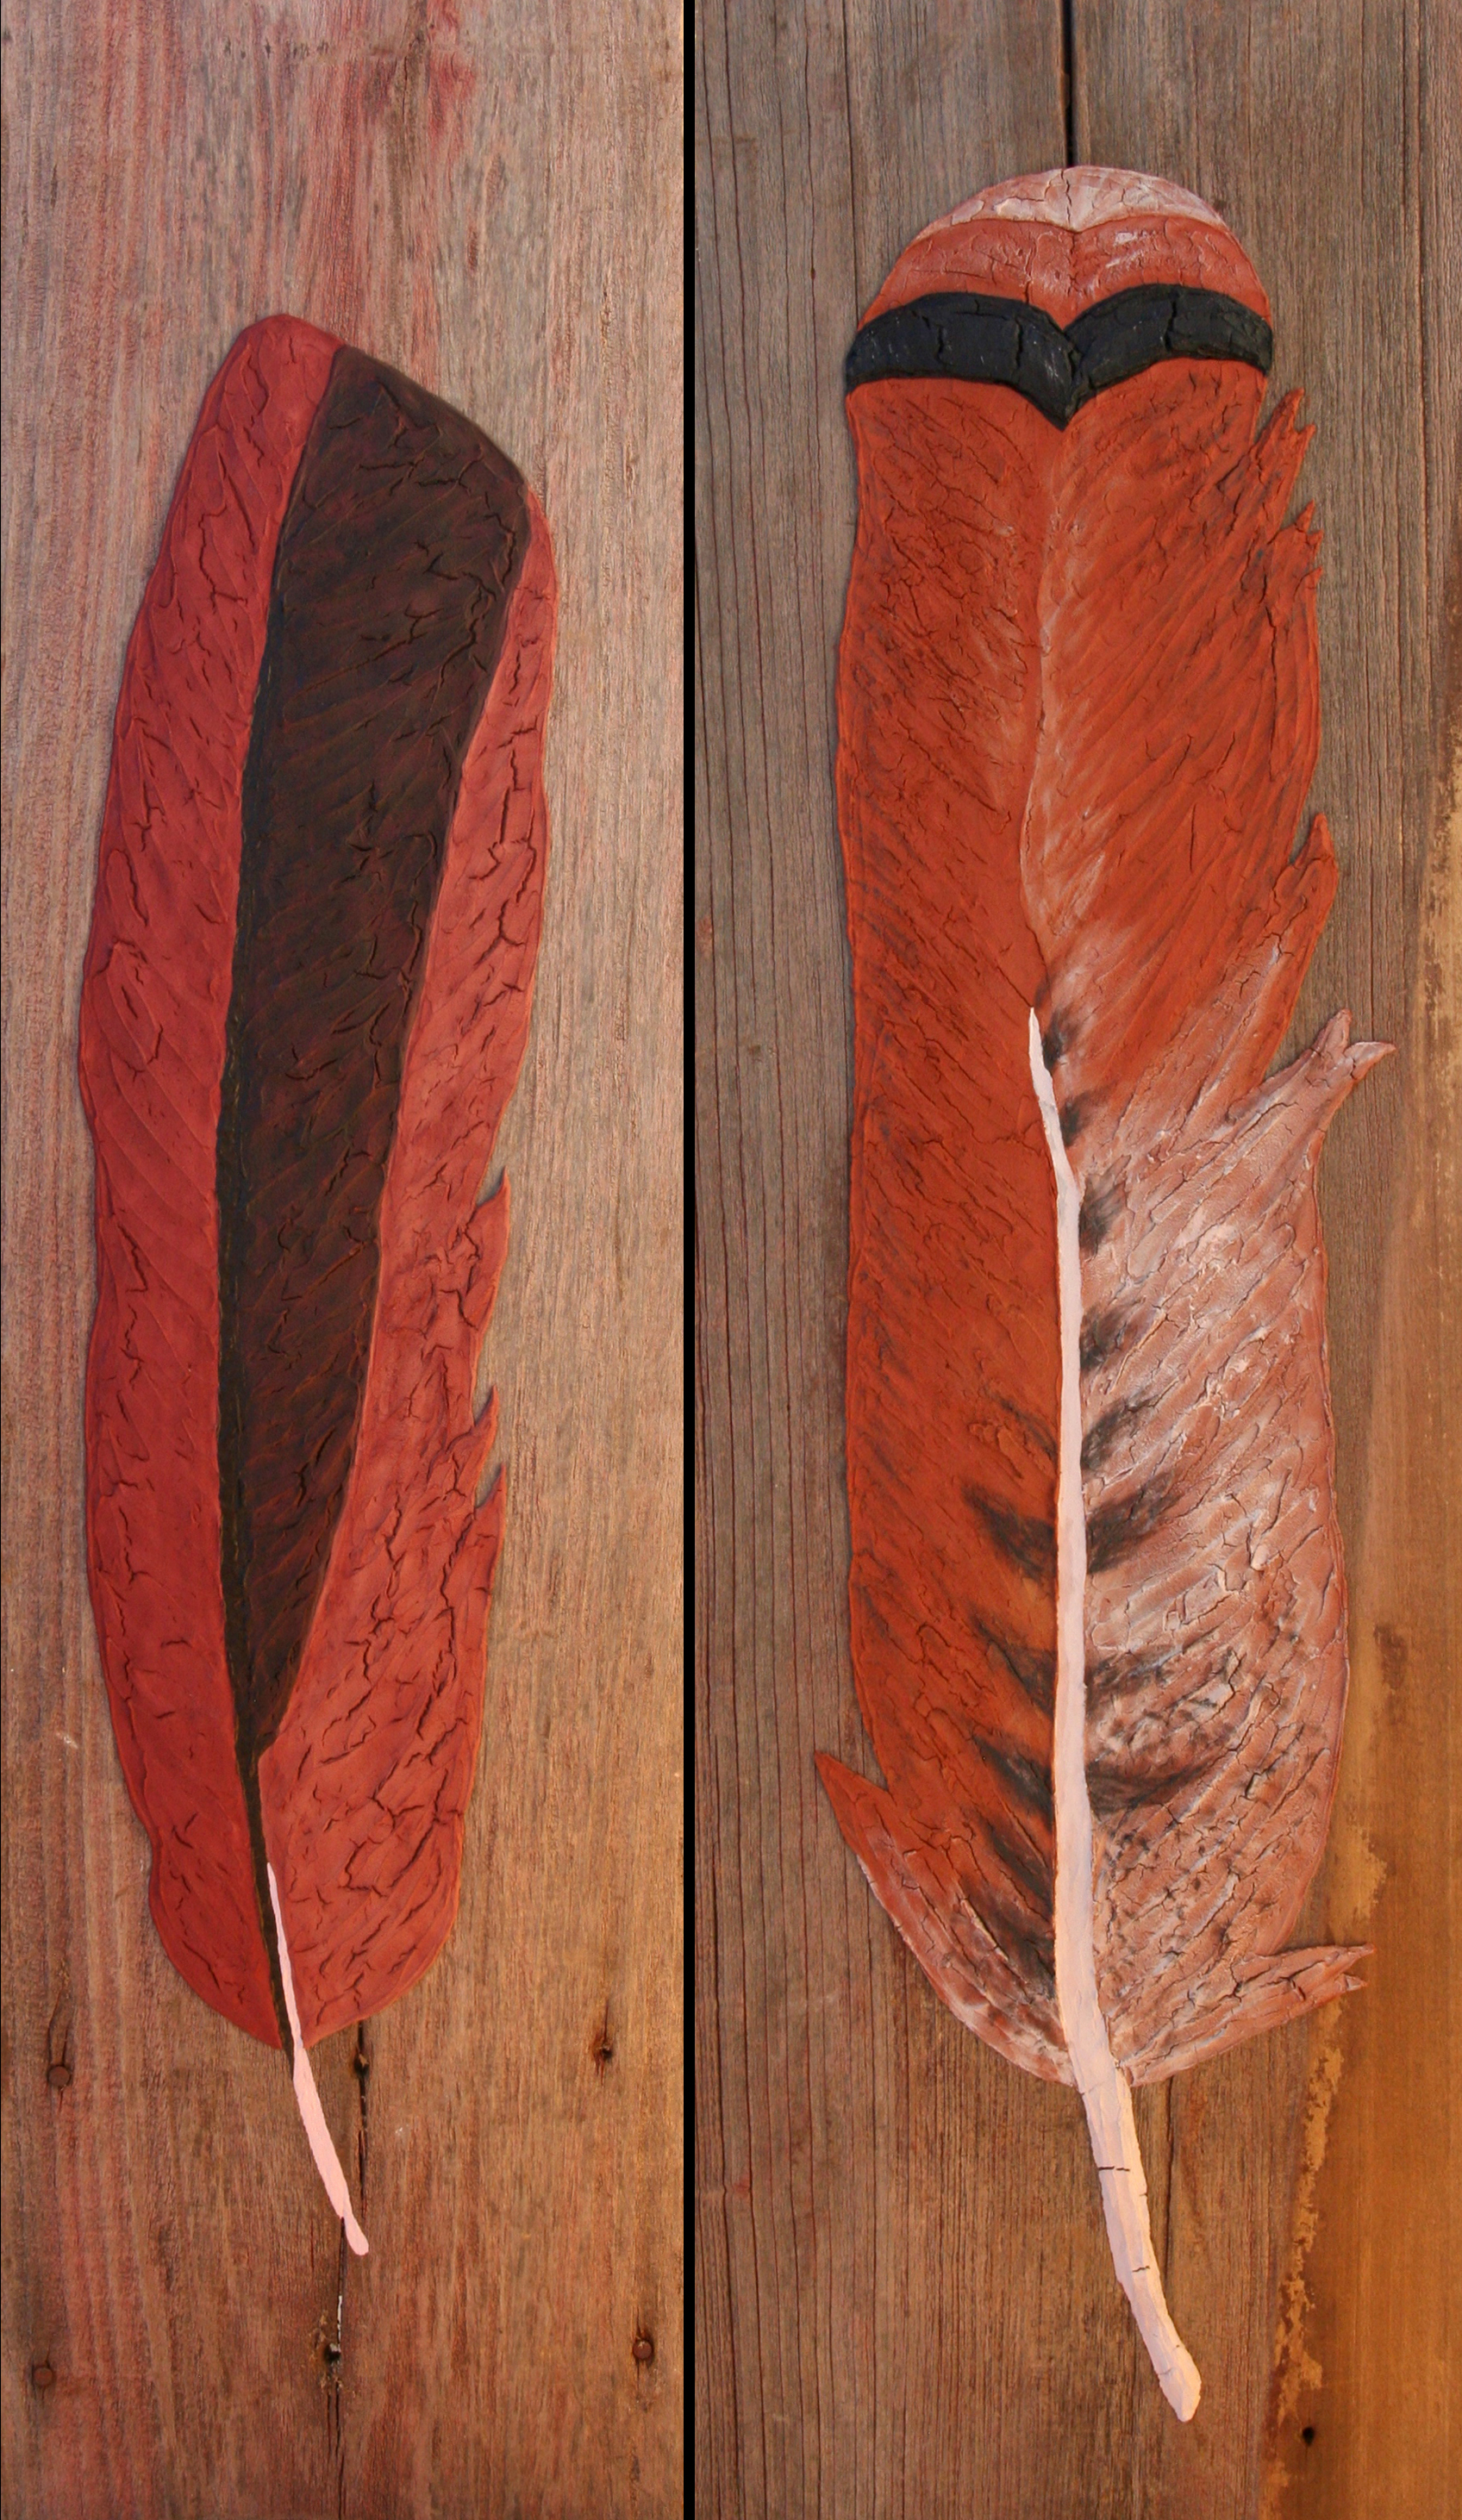 Cardinal  | plaster, acrylic on barn siding | 9.5 x 36 | $160   Red-tailed Hawk  | plaster, acrylic on barn siding | 10.5 x 36 |  sold